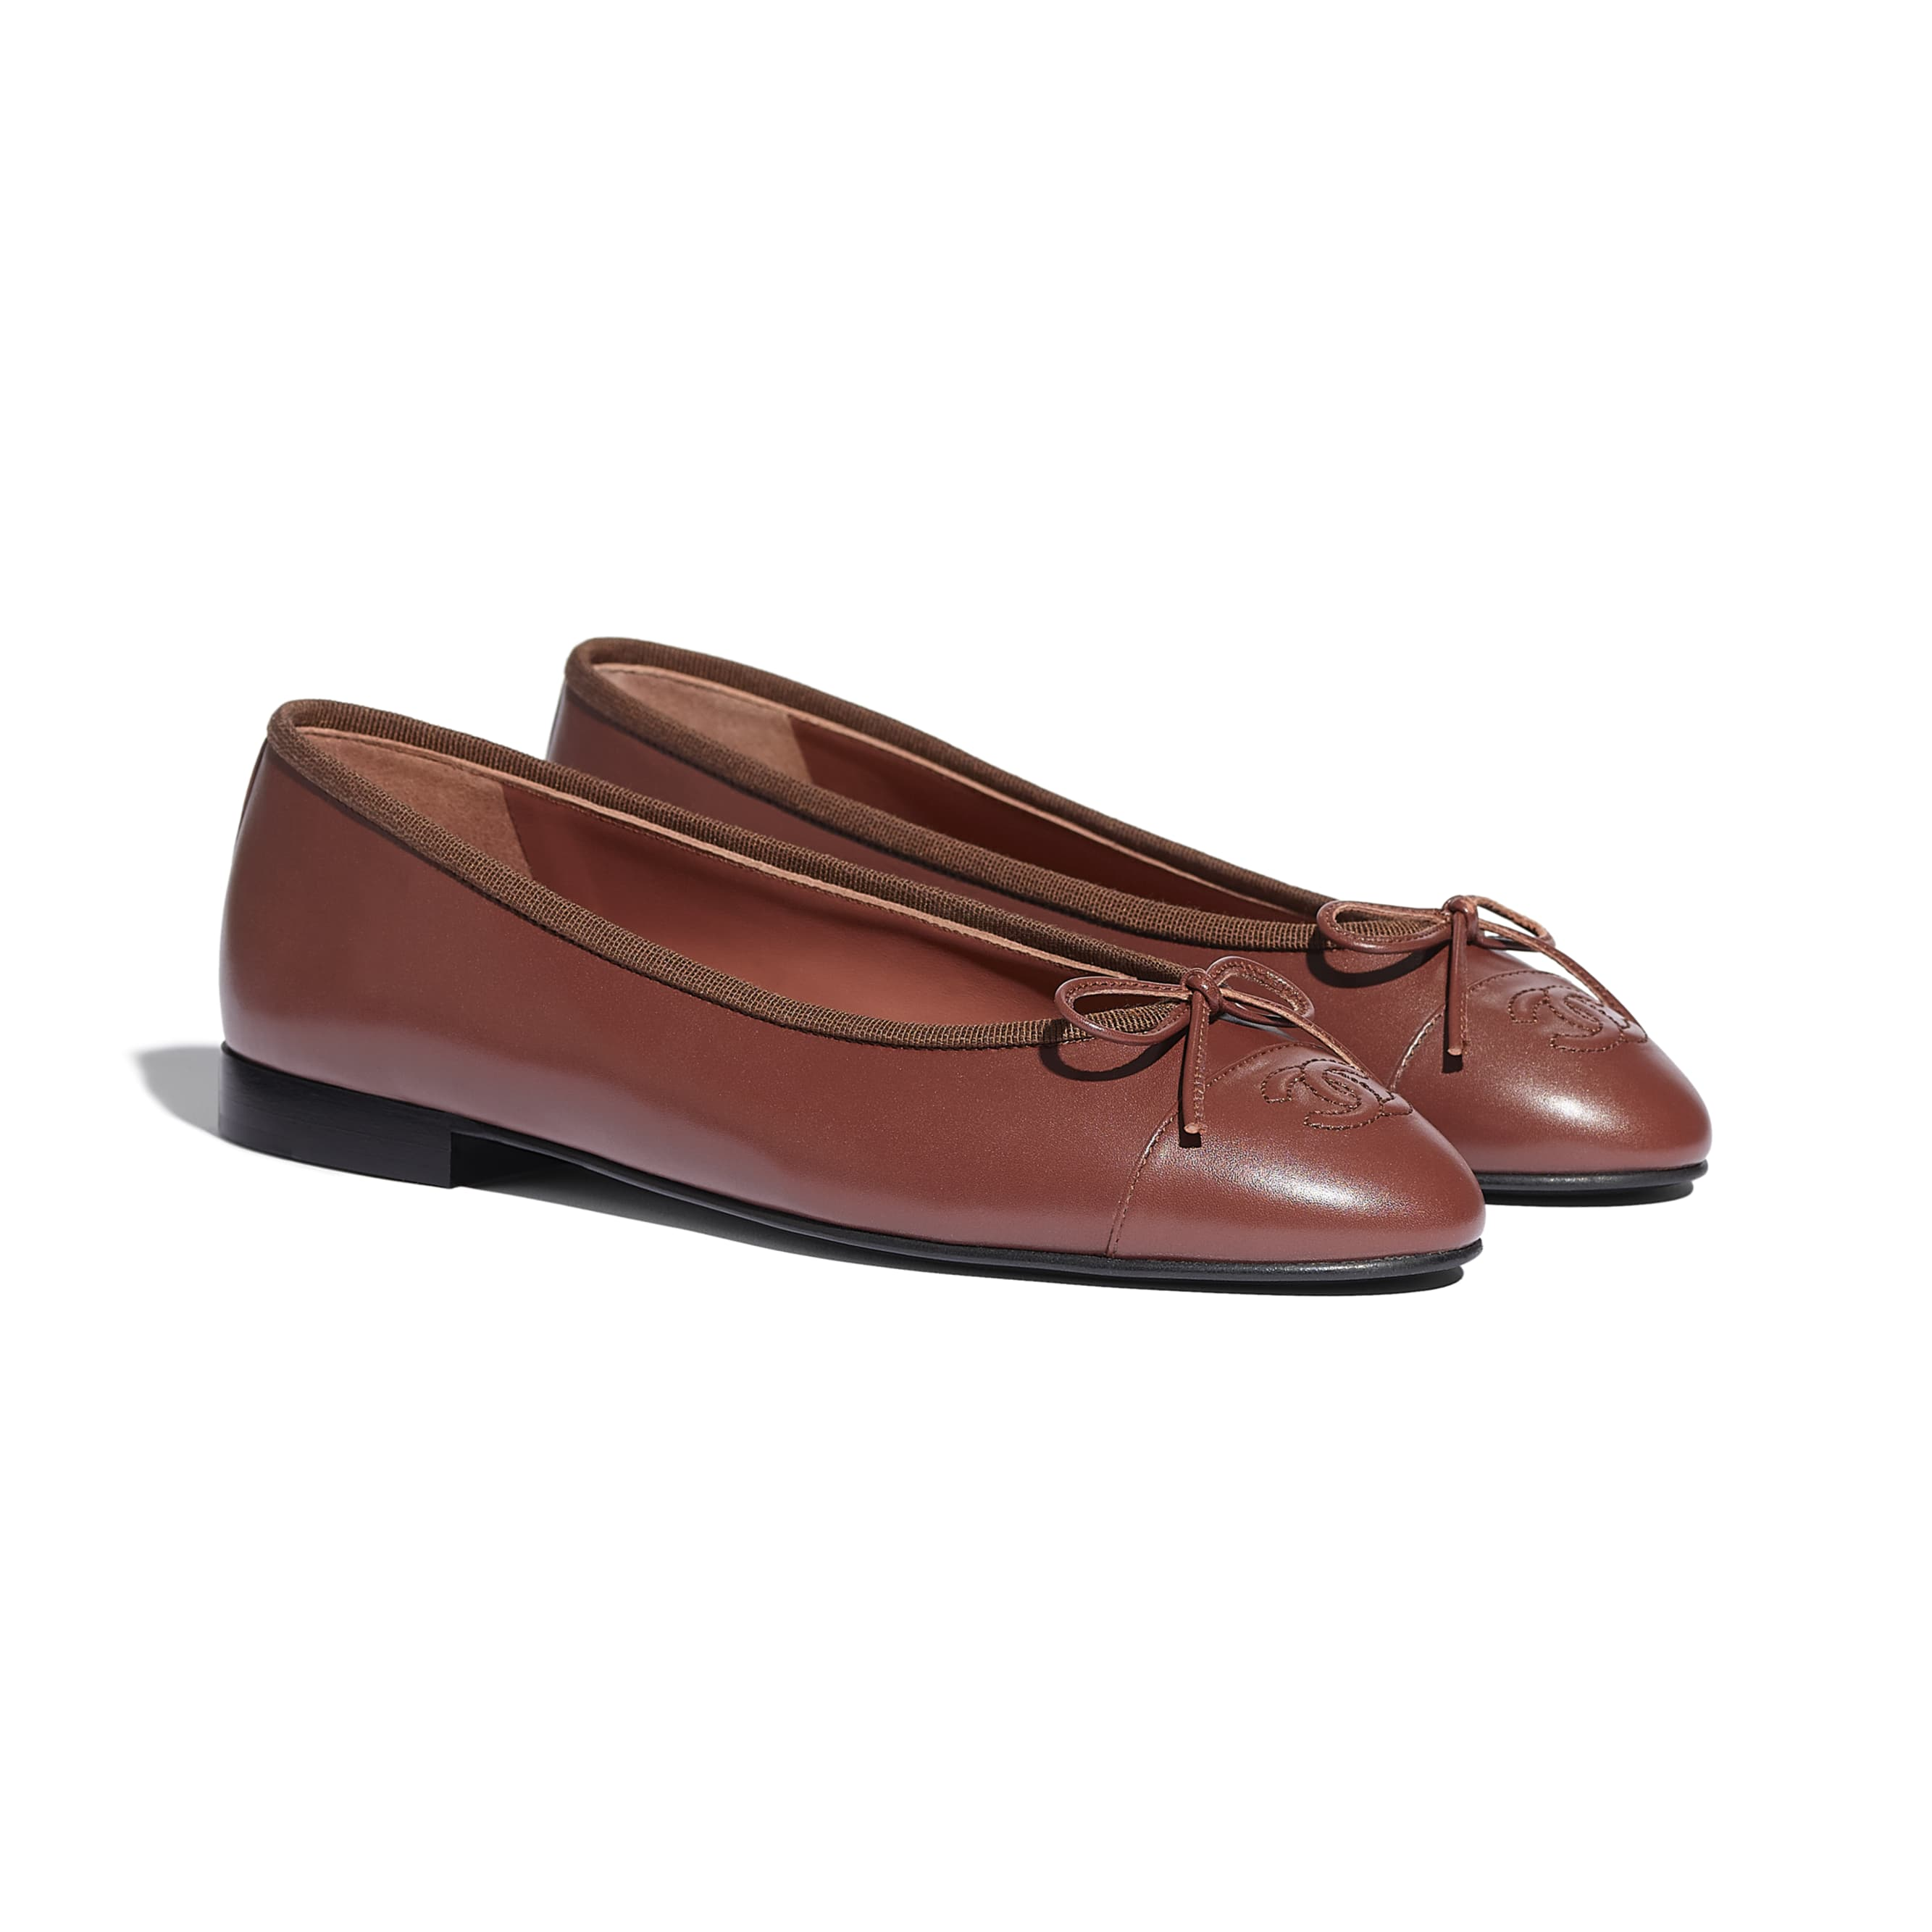 Flats - Brown - Calfskin - CHANEL - Alternative view - see standard sized version